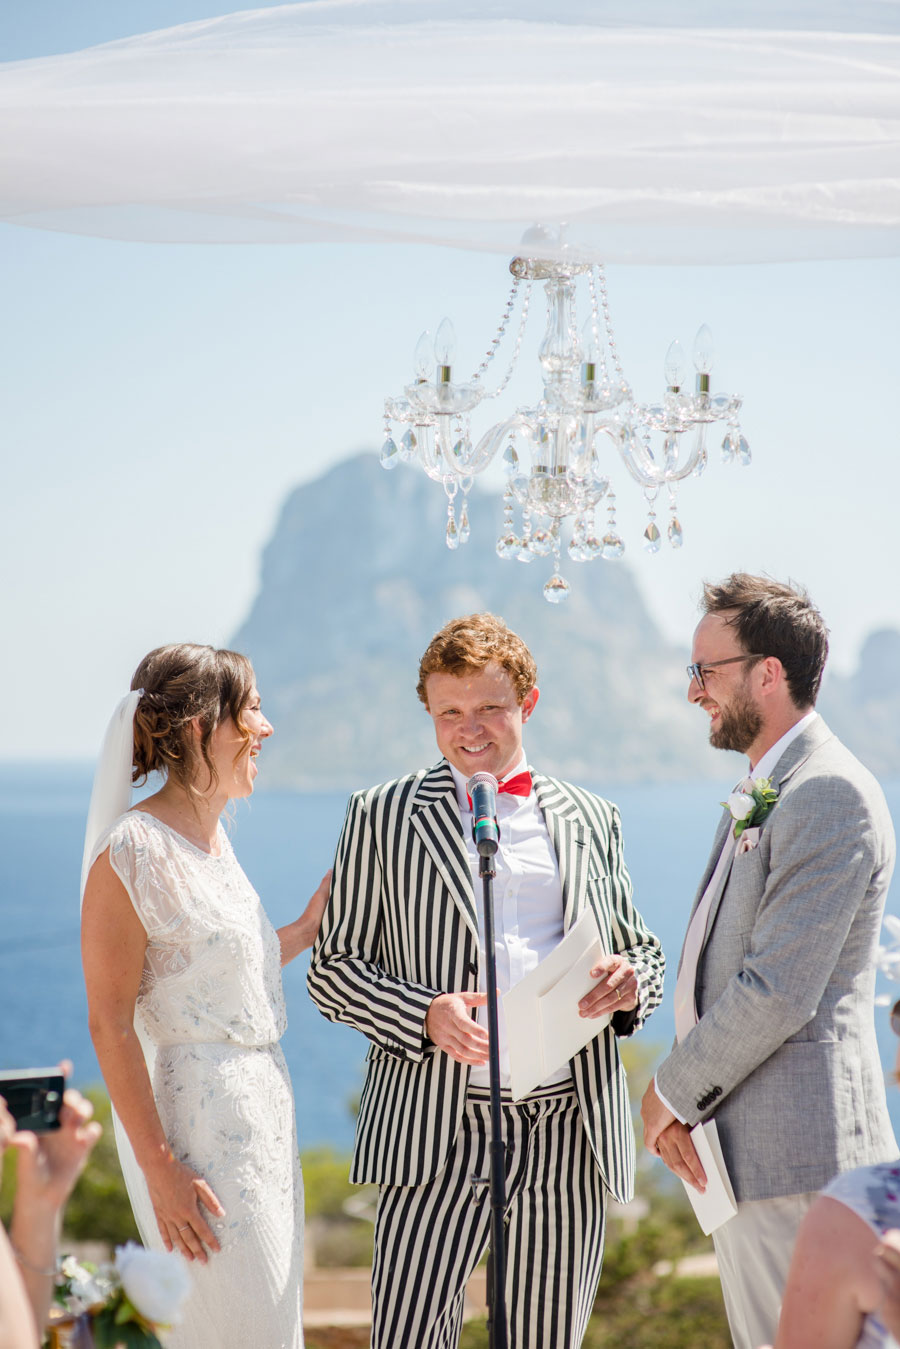 nicola-and-jimmy-es-vedra-ibiza-gypsy-westwood-photography-25